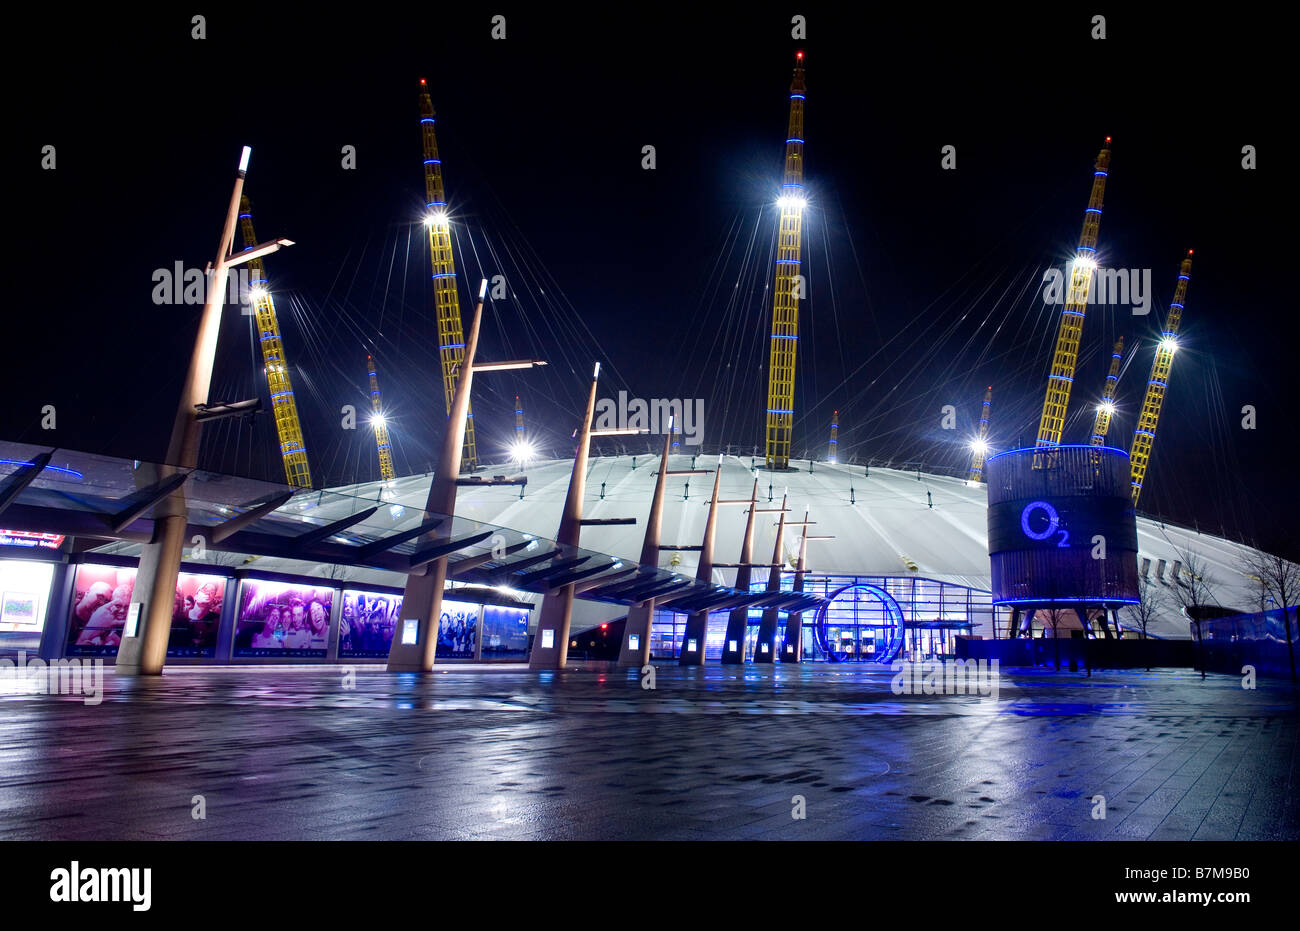 The 02 arena (formerly the millennium dome) in east London lit up at night. - Stock Image